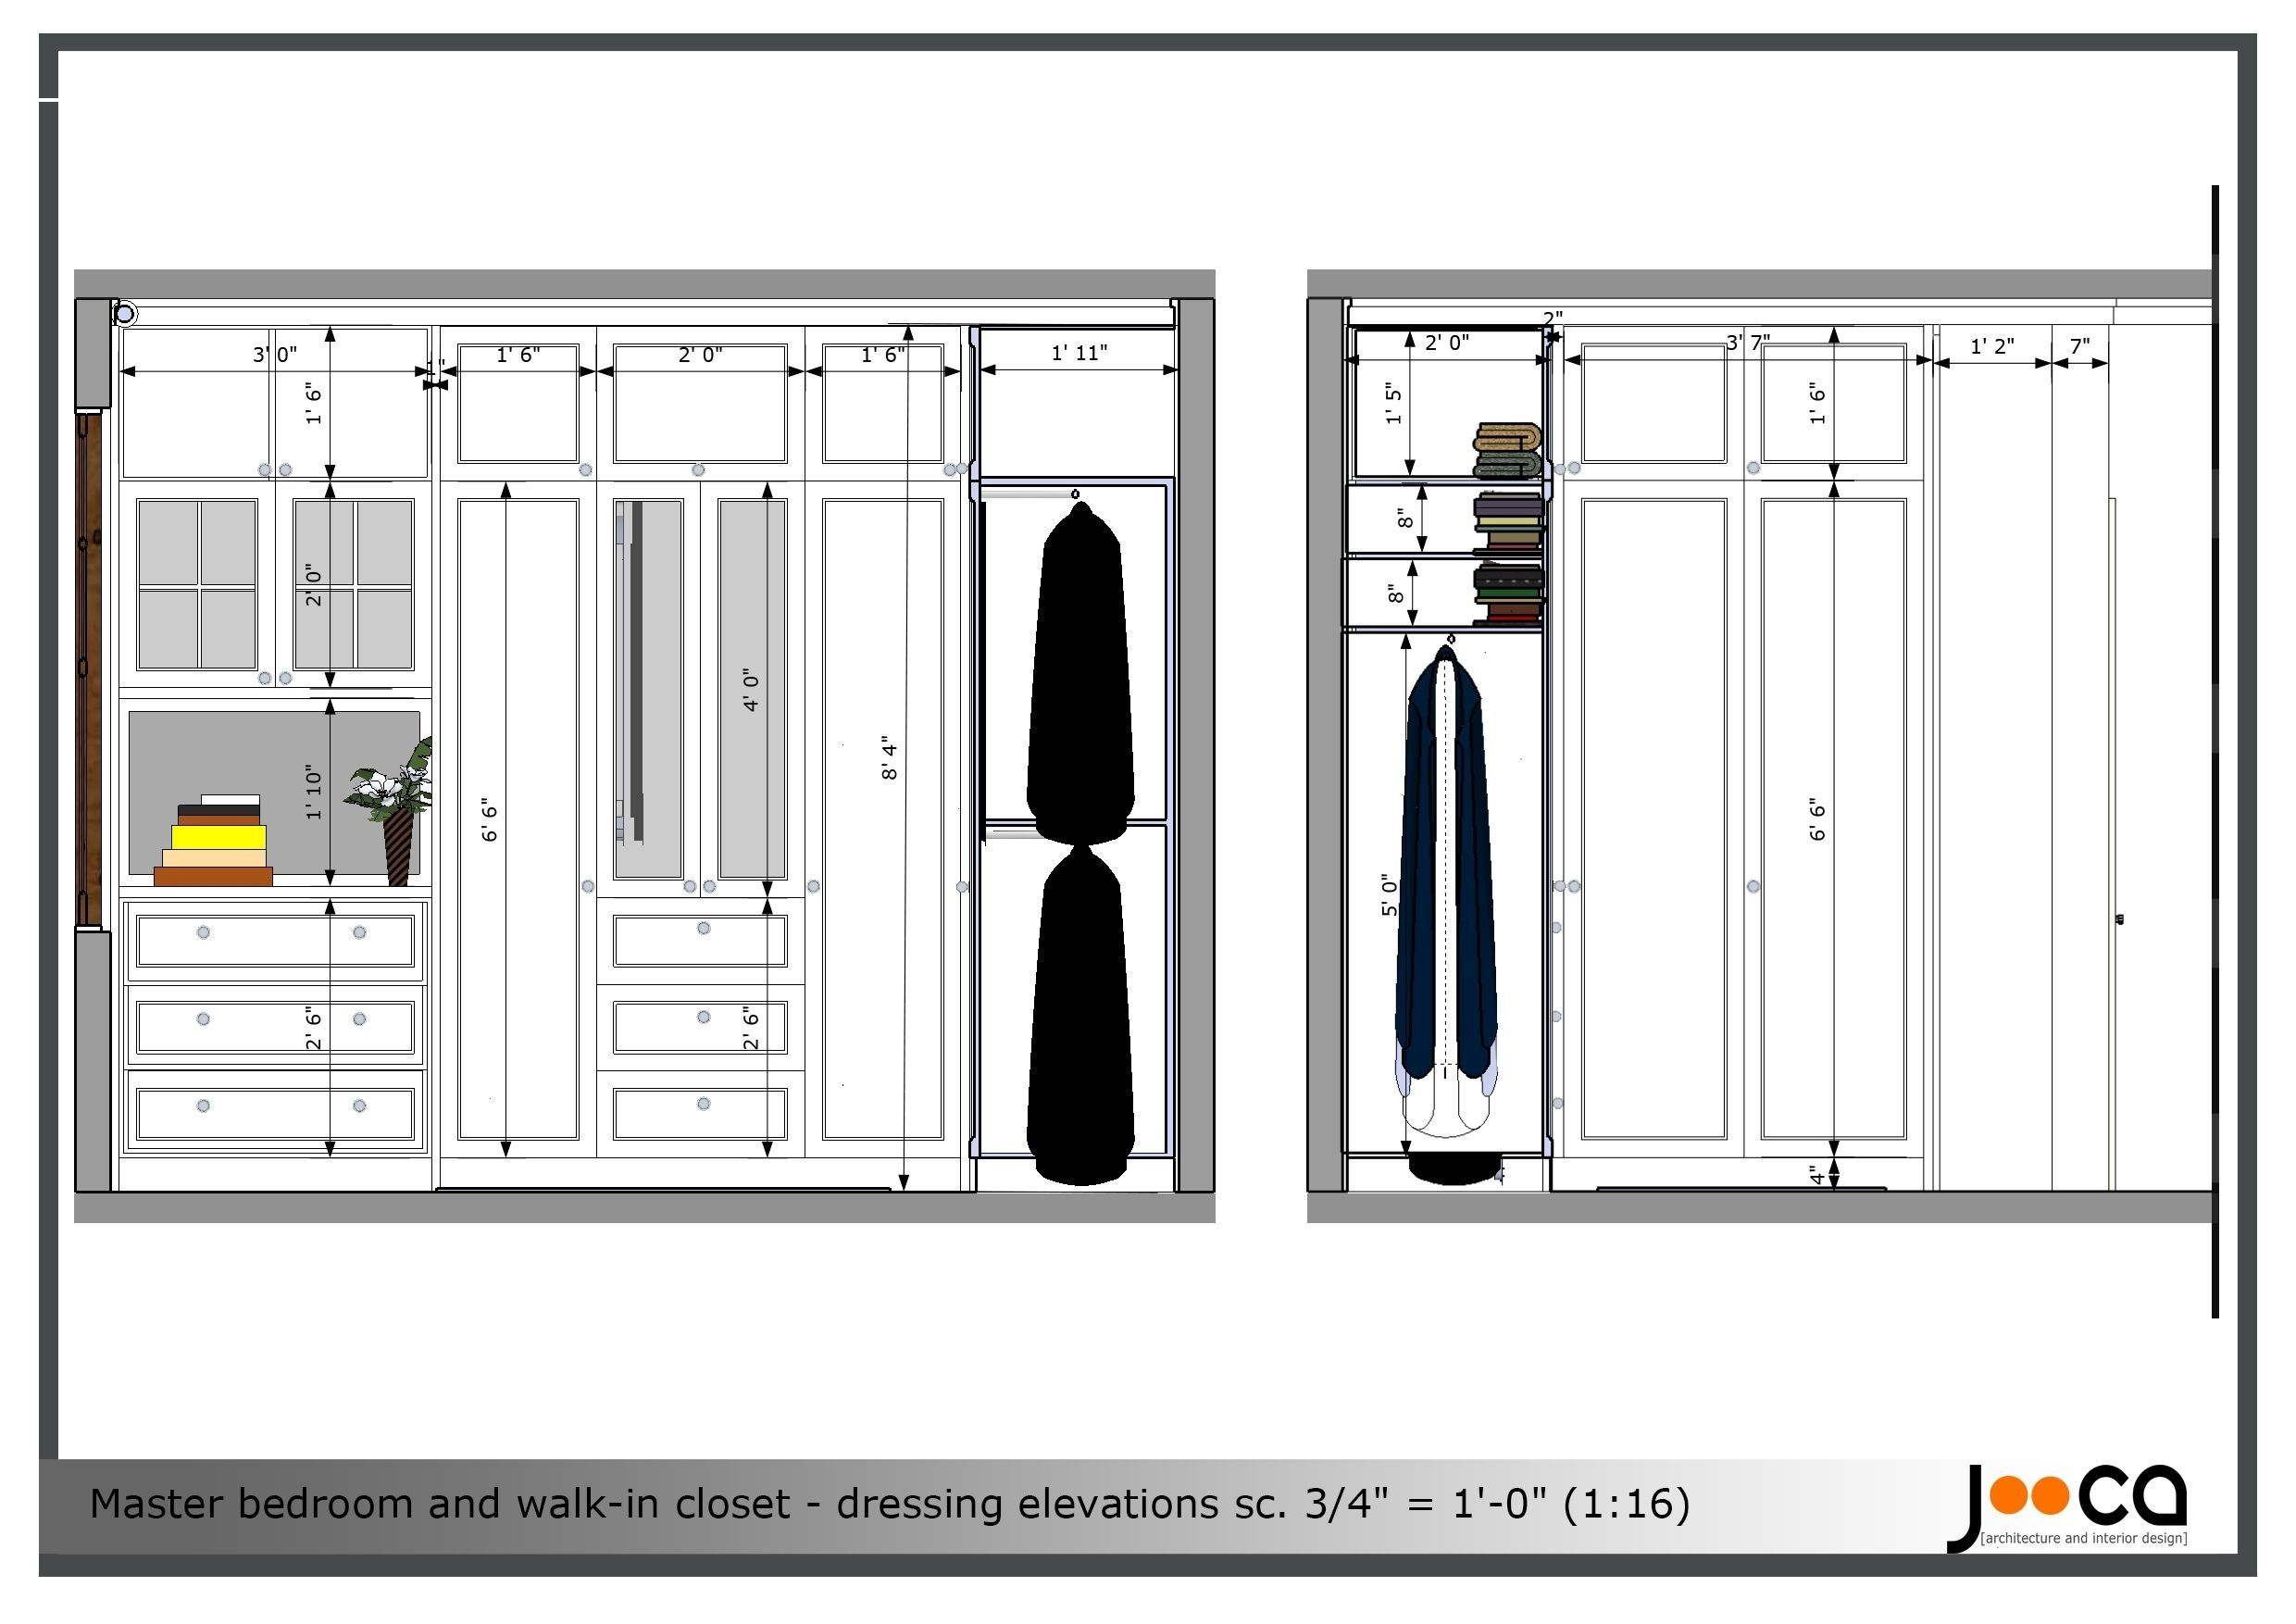 Bedroom Closet Depth Minimum Bedroom Closet Depth Closet Design Plans Closet Layout Closet Design Layout